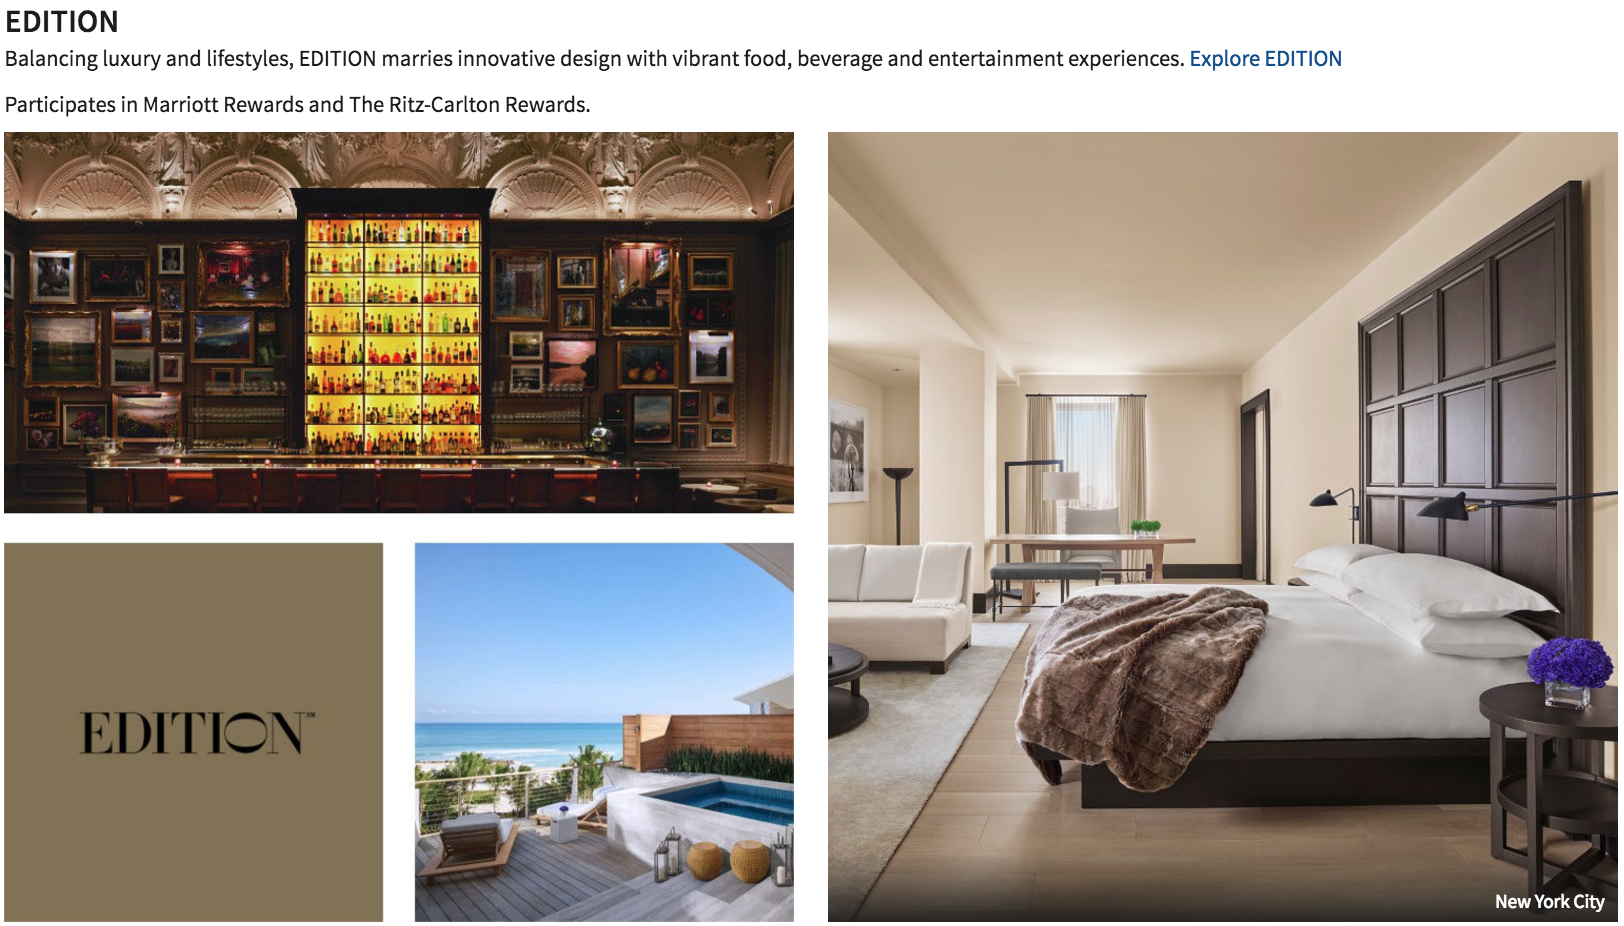 Edition hotels are a Marriott luxury brand.